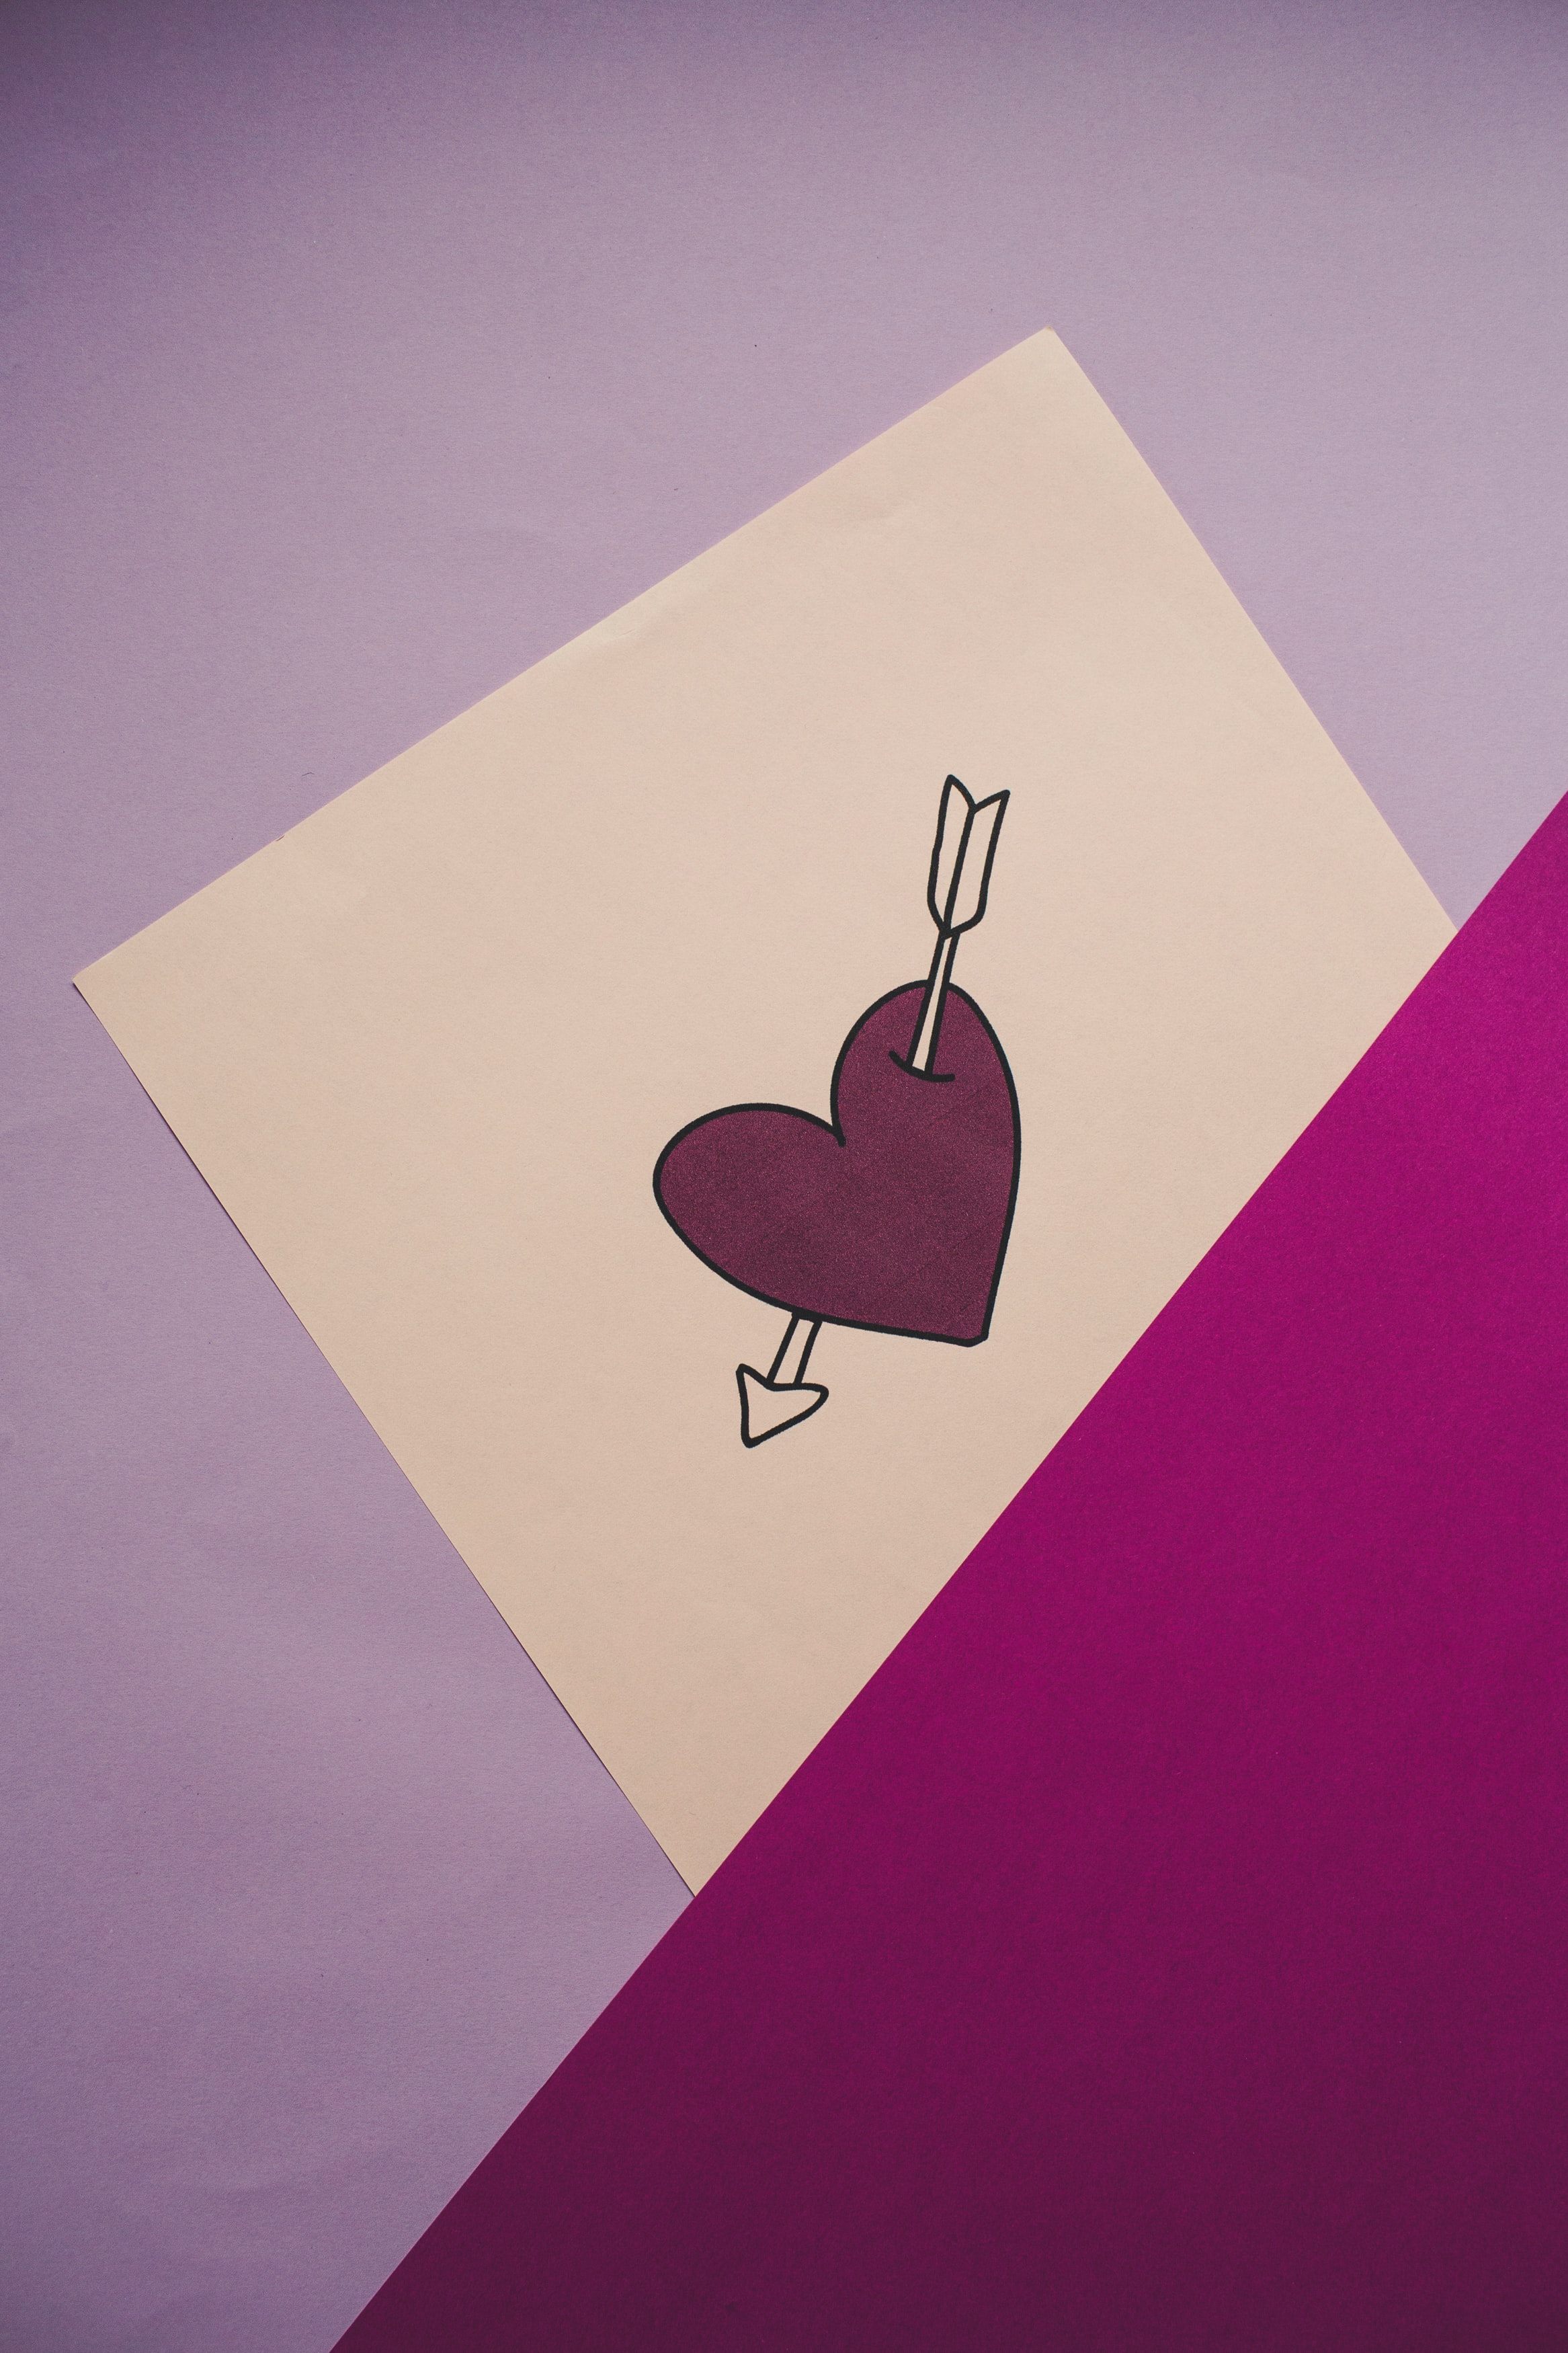 66485 download wallpaper Heart, Arrow, Love, Paper screensavers and pictures for free